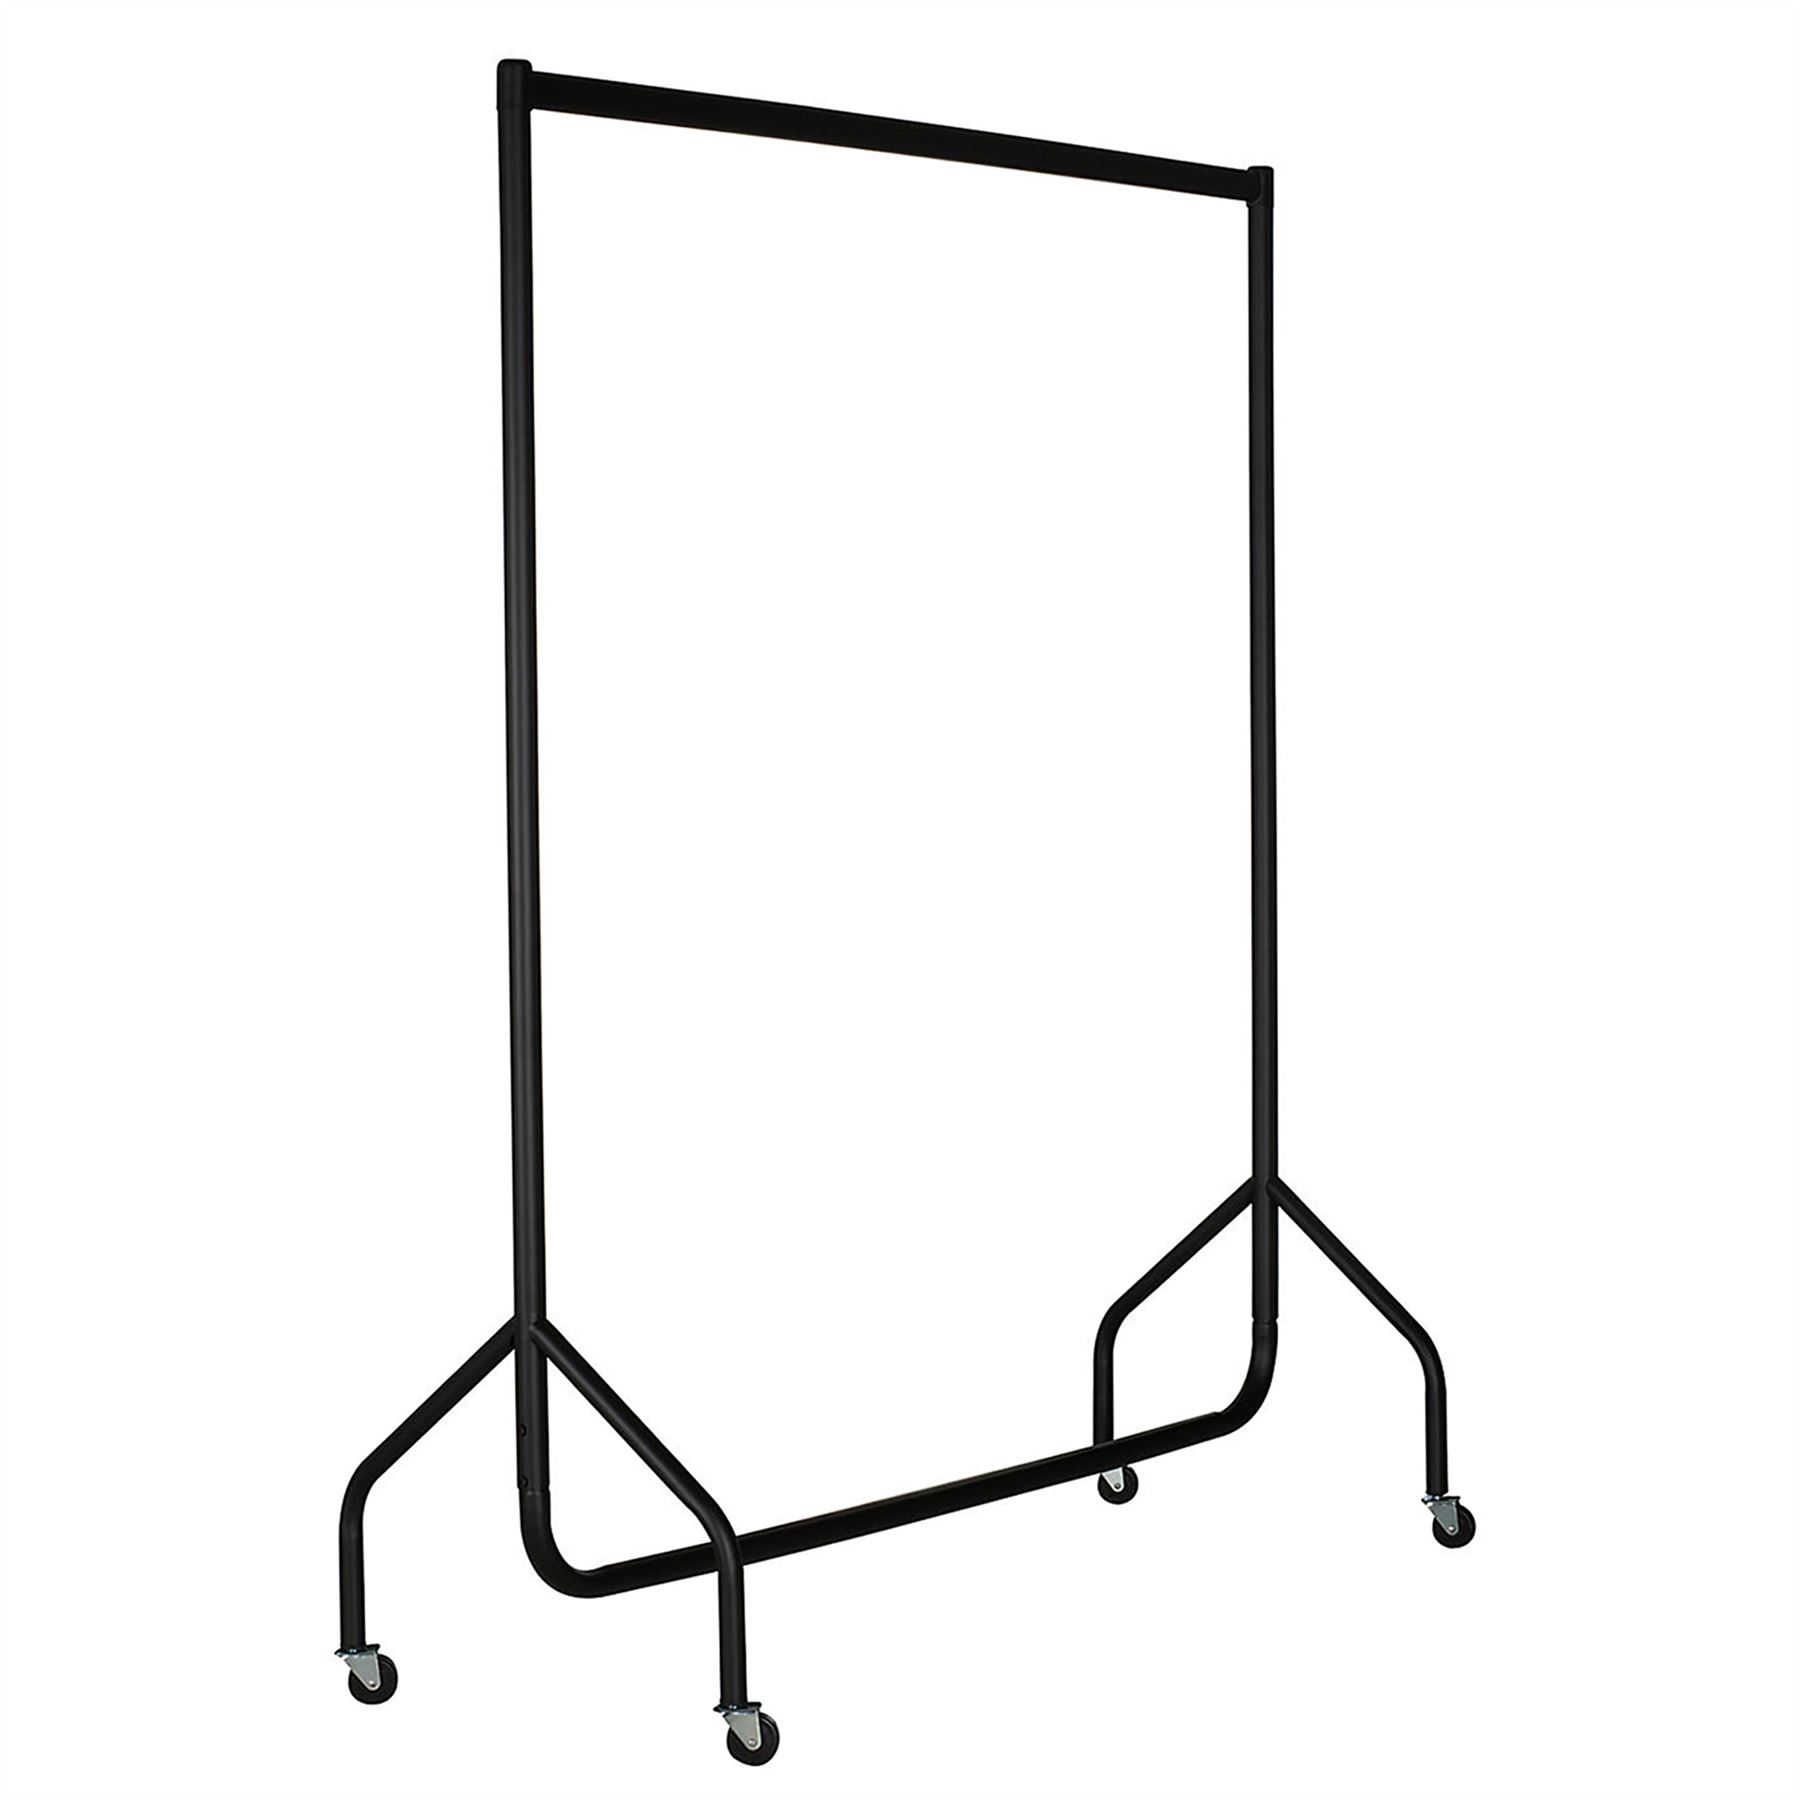 shop mirage racks acevog rakuten hanging garment rack product drying clothes